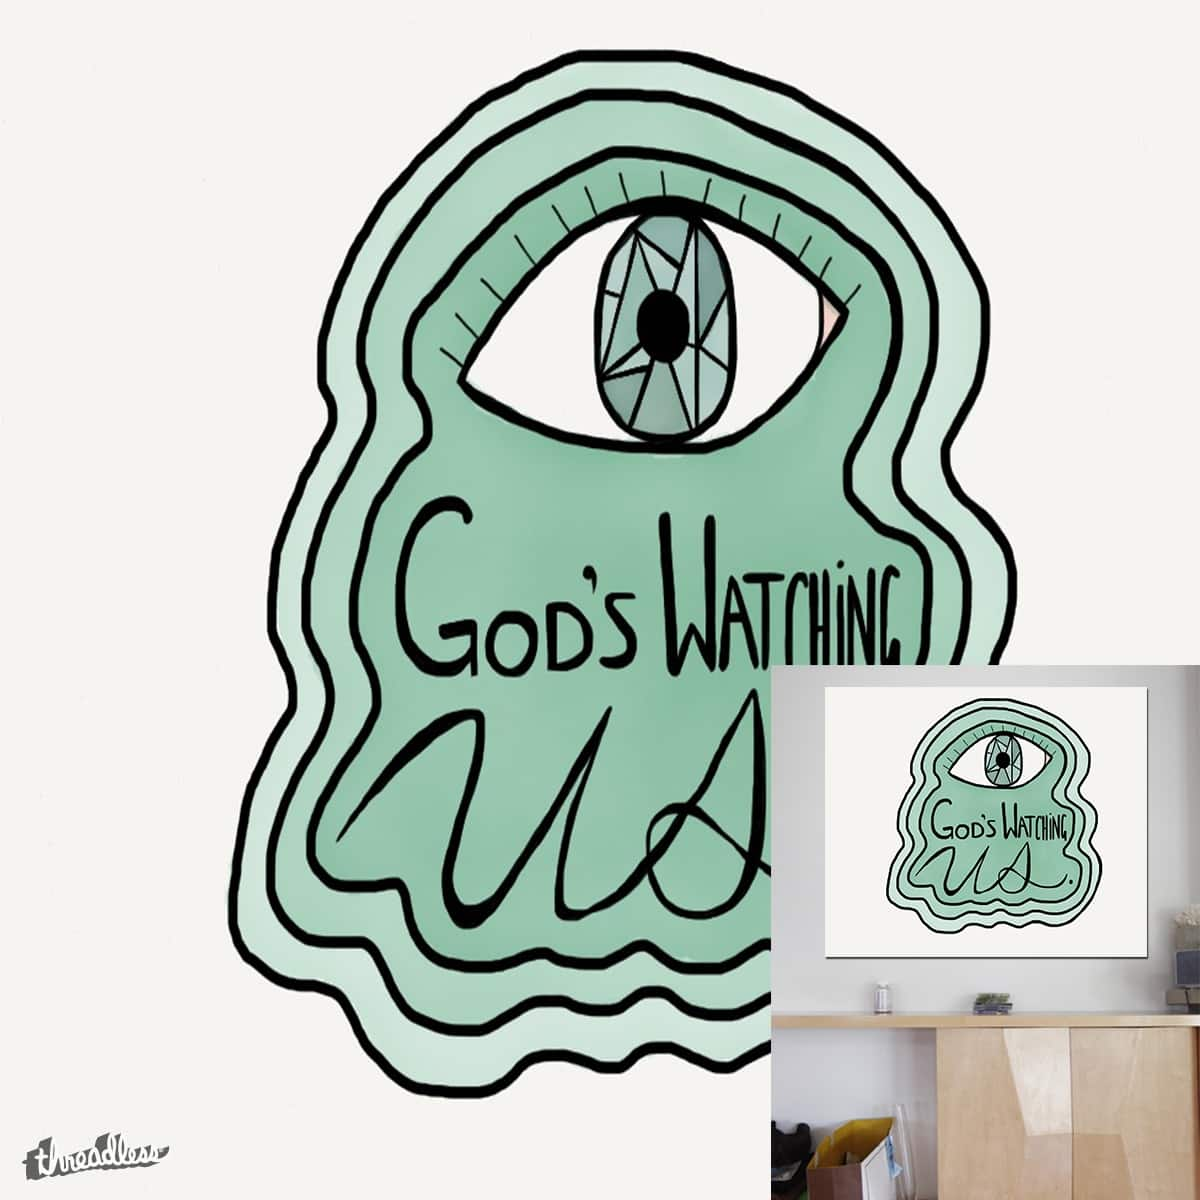 God's Watching Us by morgan.janielle on Threadless